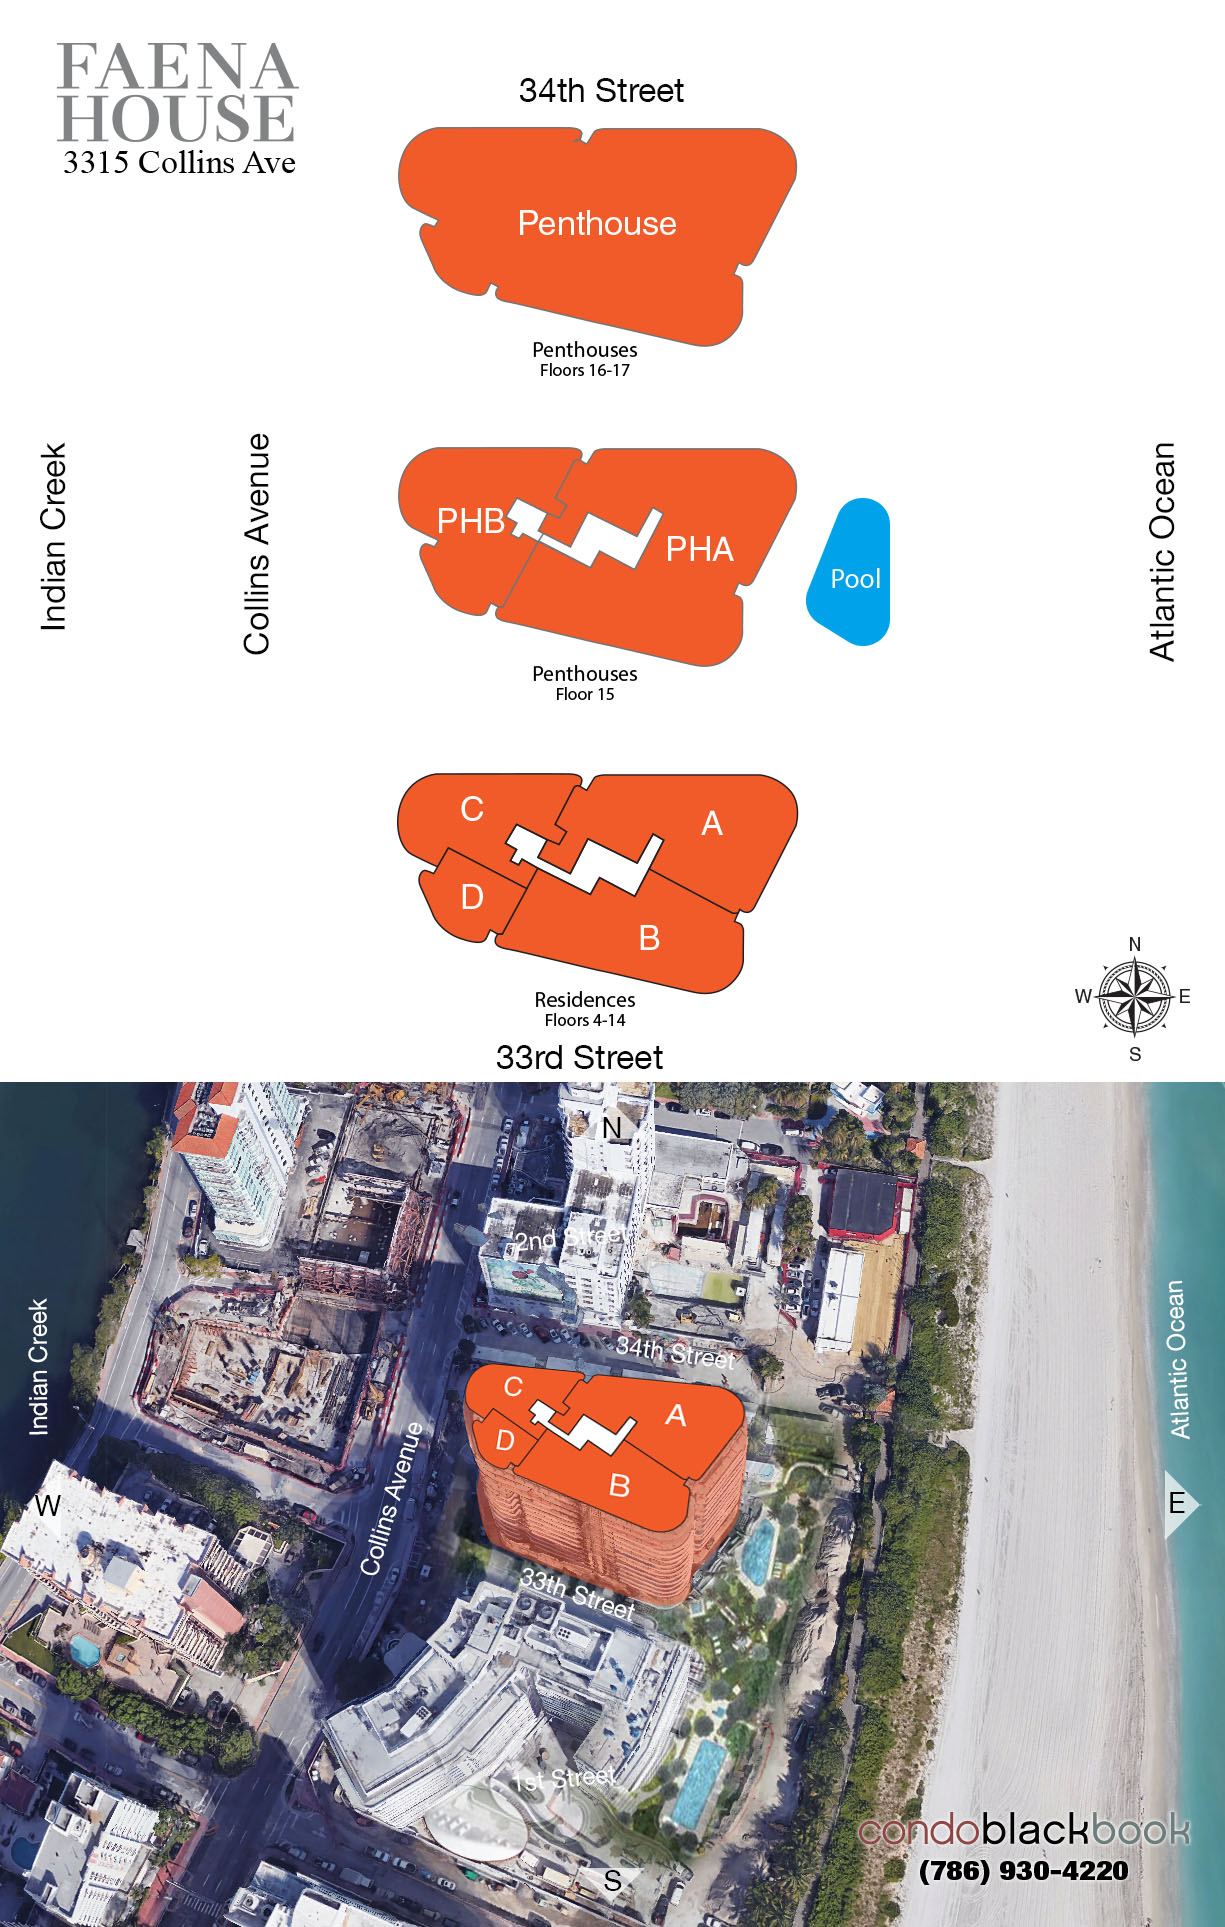 Faena House Floorplan